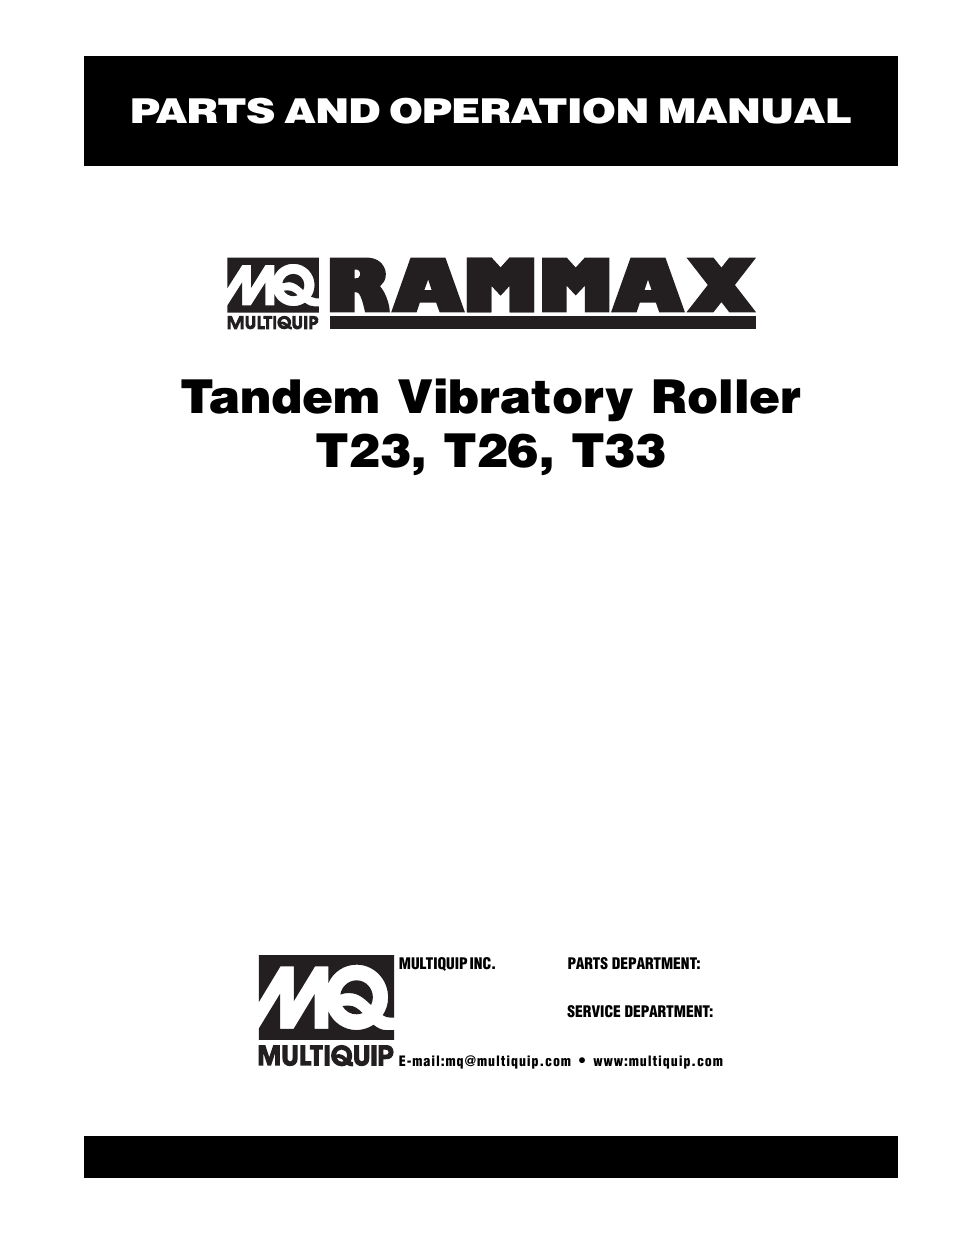 Multiquip Rammax Tandem Vibratory Roller T23 User Manual